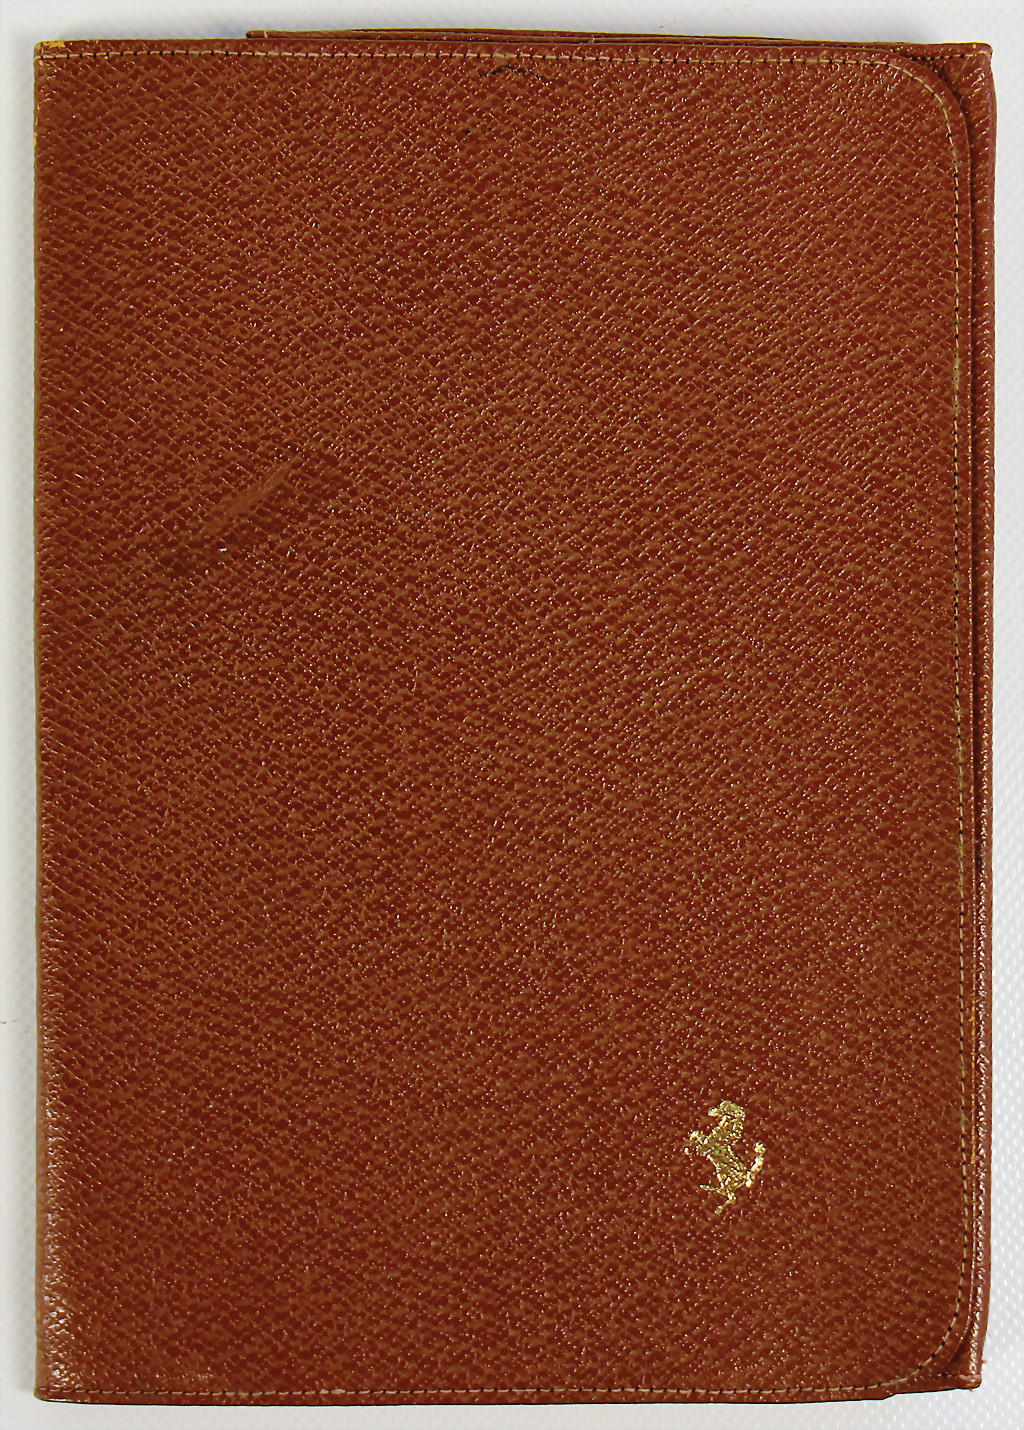 Ferrari leather folder 250 GT - result 3.100 €